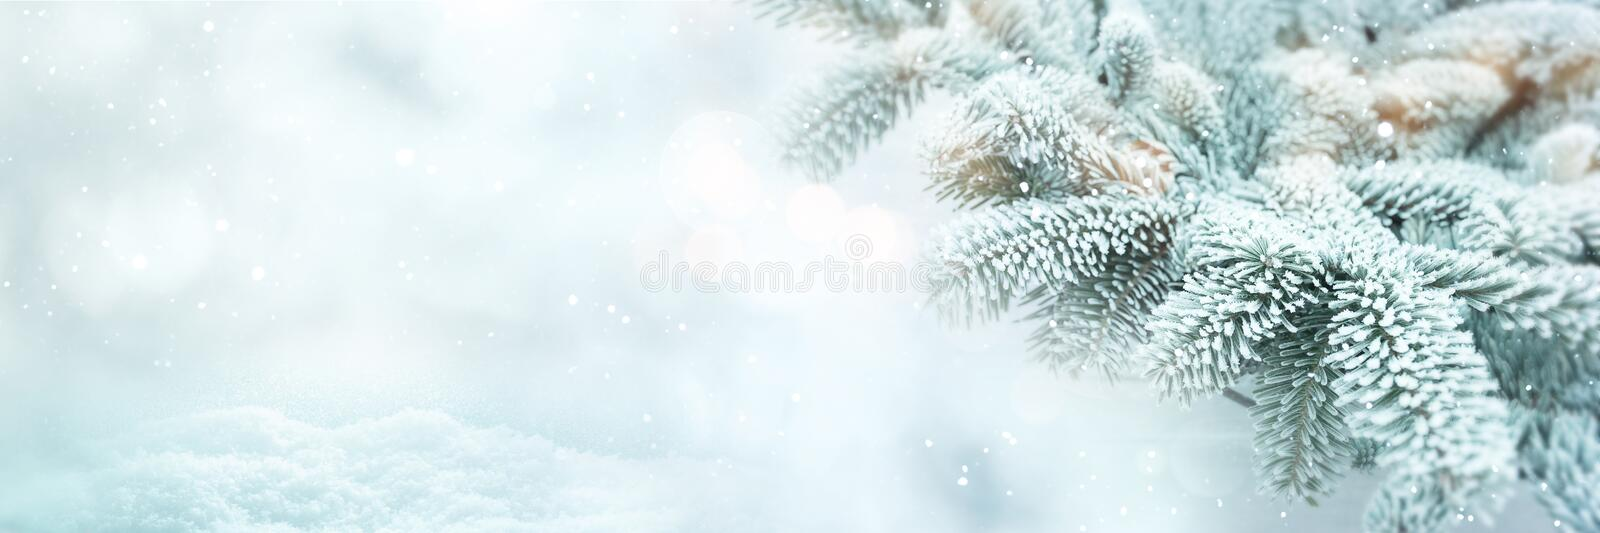 Winter scene background with fir branches stock photography